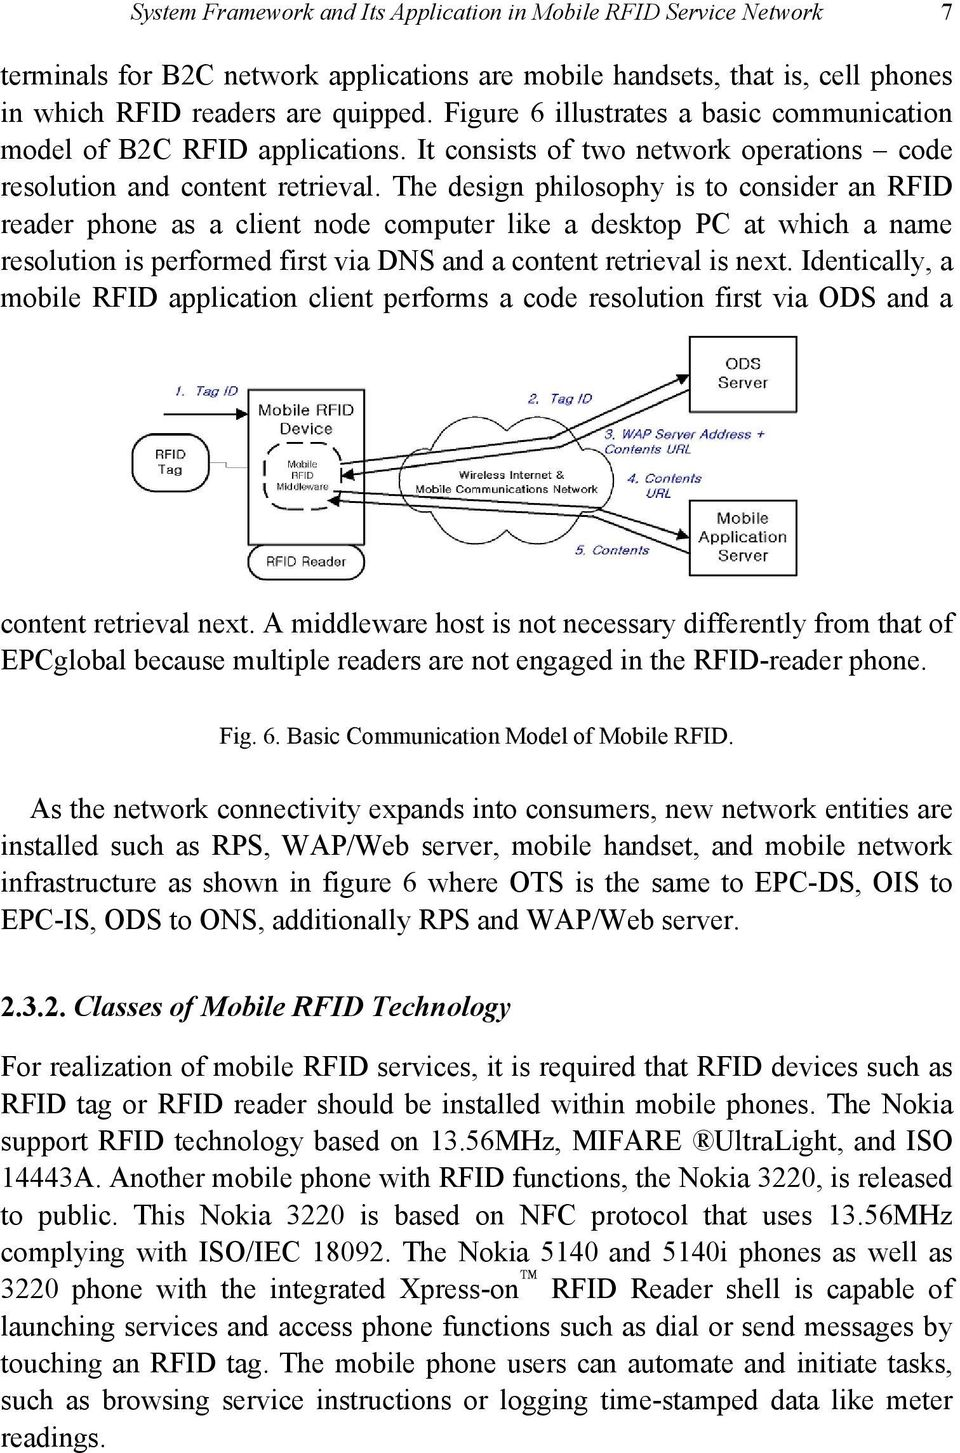 The design philosophy is to consider an RFID reader phone as a client node computer like a desktop PC at which a name resolution is performed first via DNS and a content retrieval is next.